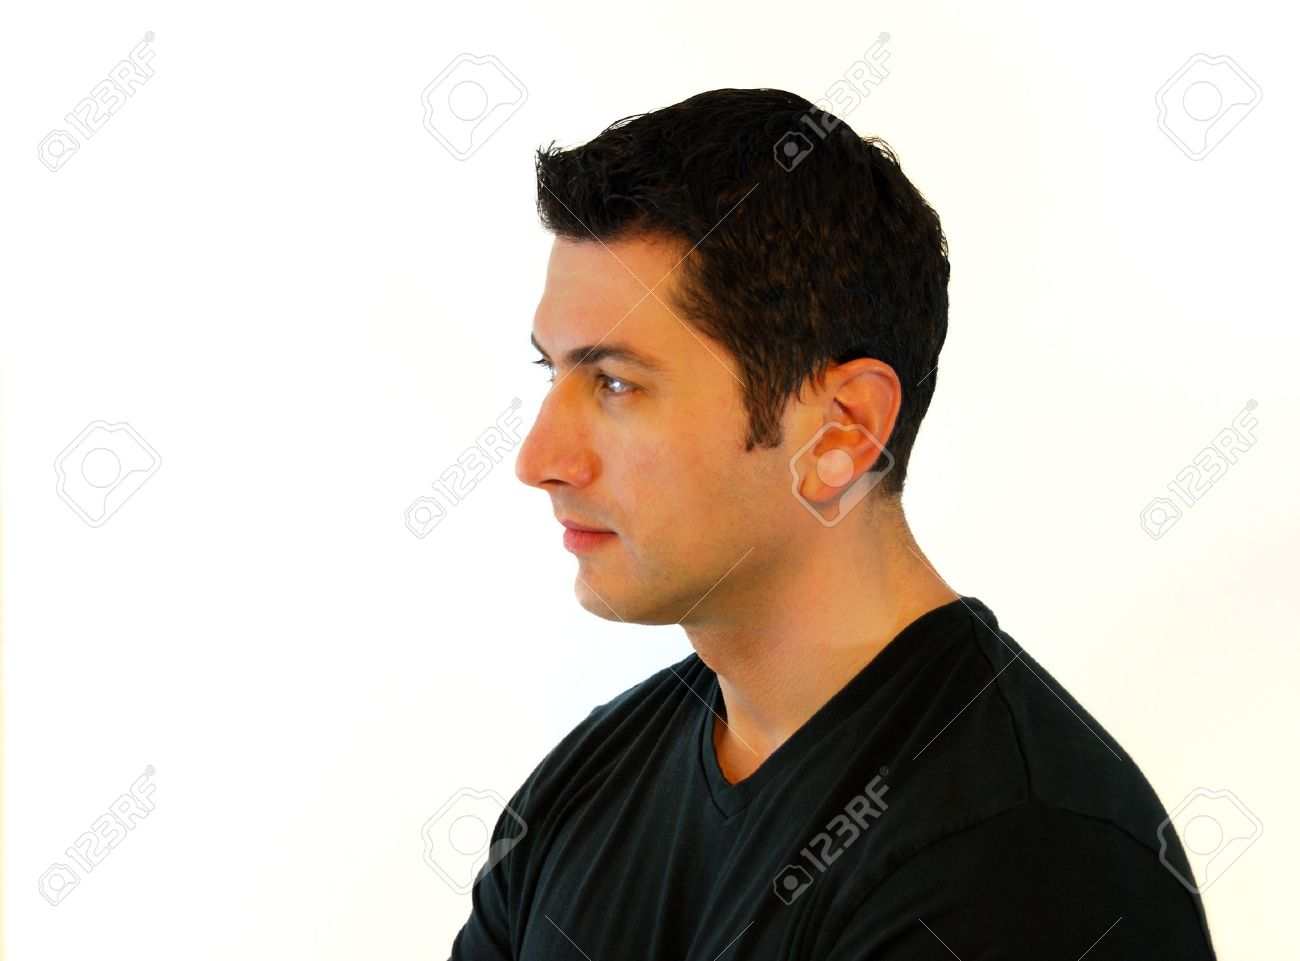 A profile of a pensive man in black t-shirt over white background. Stock Photo - 5671064